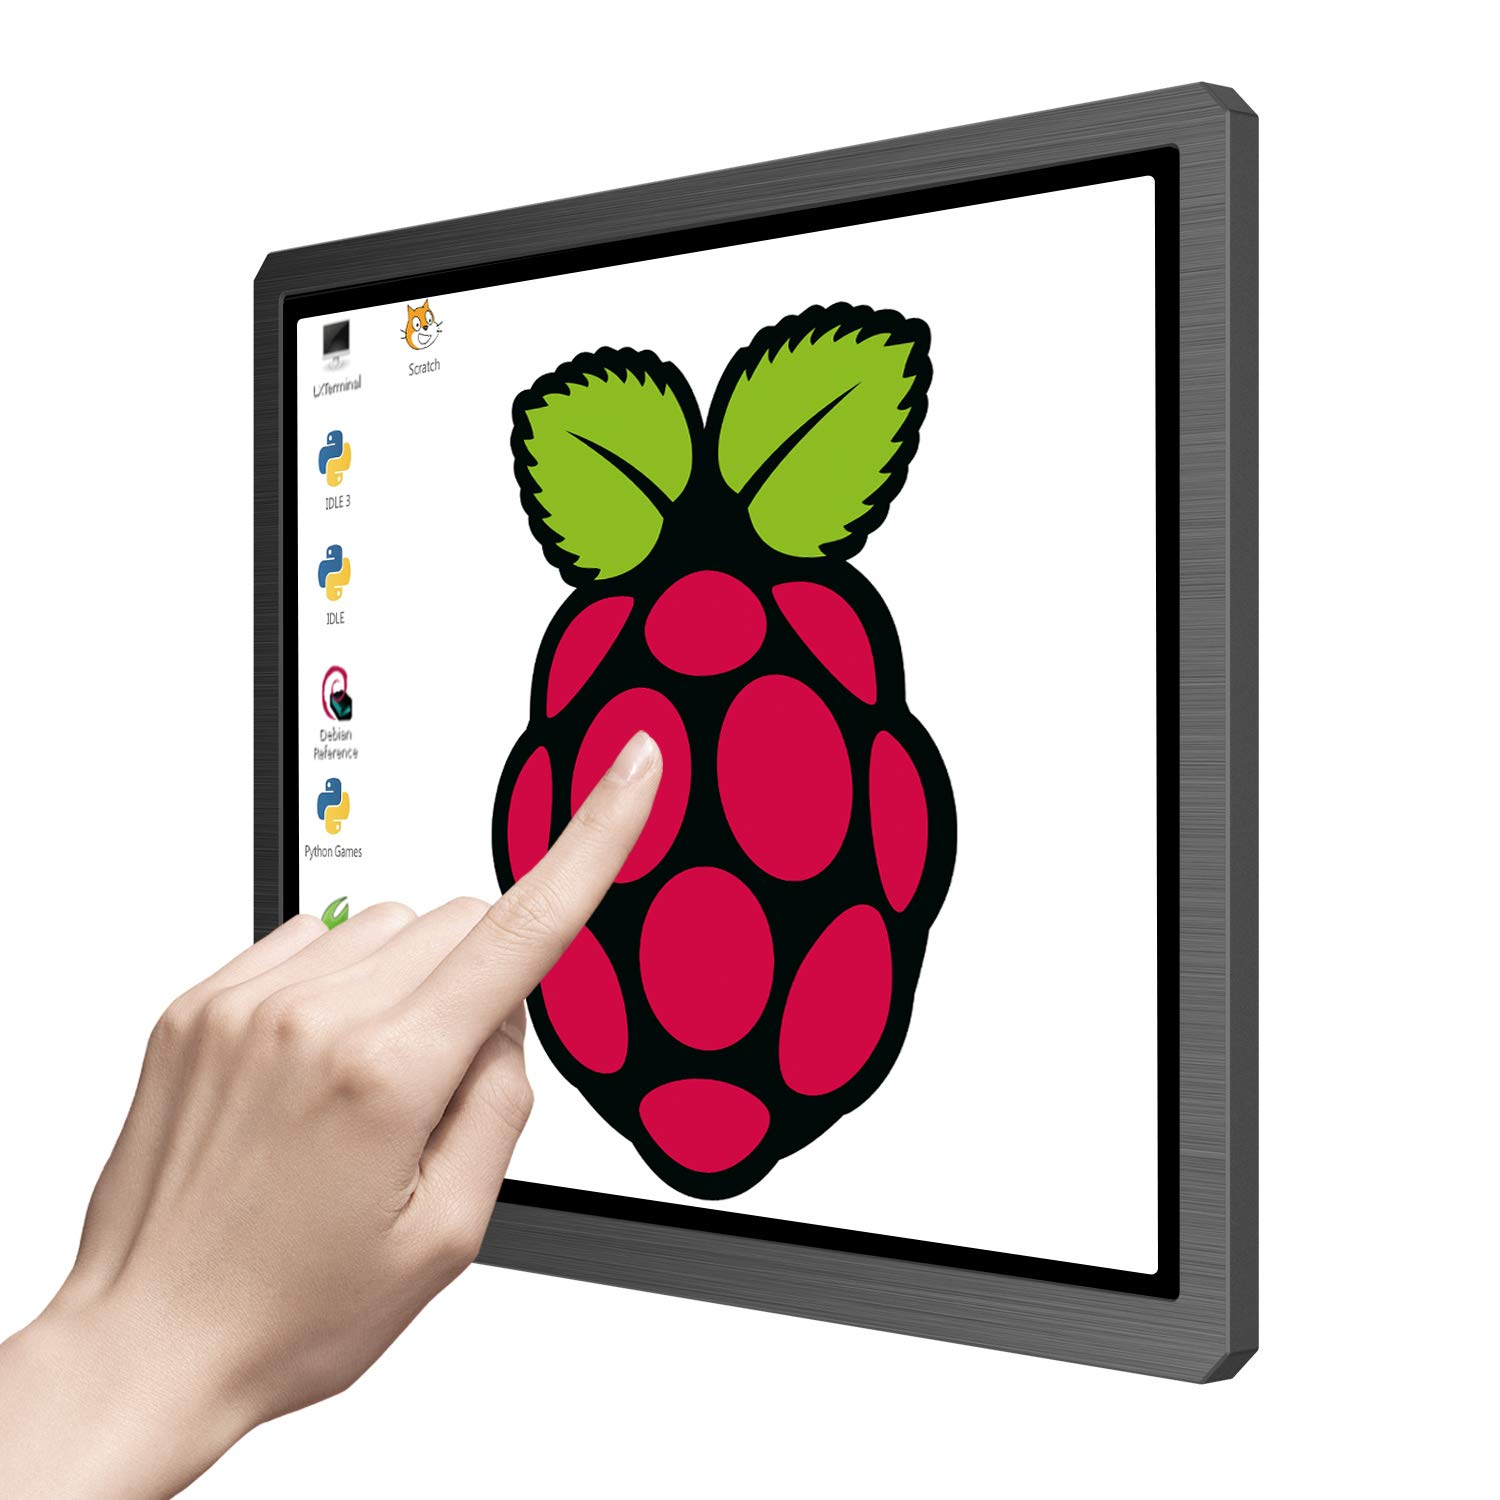 Touchscreen Portable Monitor, 12.3 Inch 1600x1200 4:3 IPS HDMI/VGA/DVI Input for Industrial Equipment,10 Point Touch Computer Display Speaker VESA Fit for Raspberry Pi TV Box PS4 Xbox Laptop Phone Mac